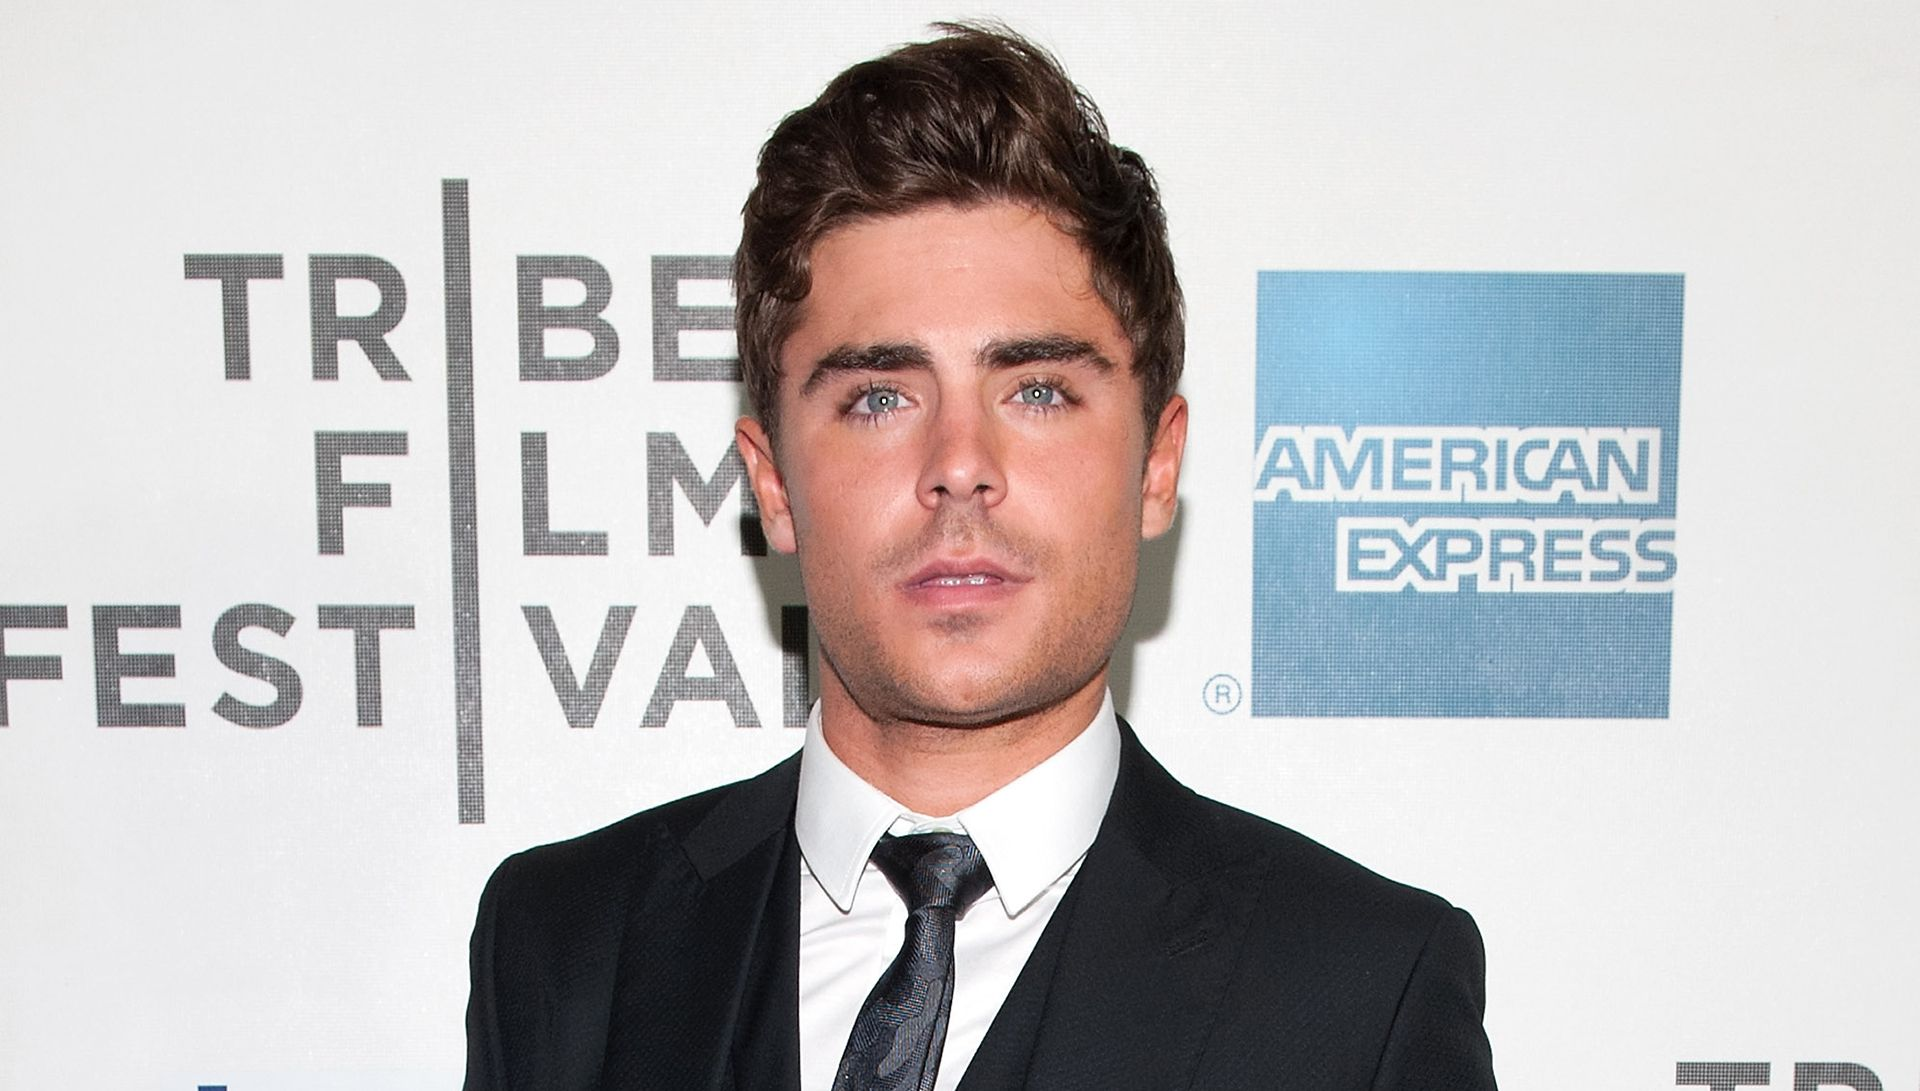 Zac Efron works out with a broken jaw - Zac Efron broken jaw workout